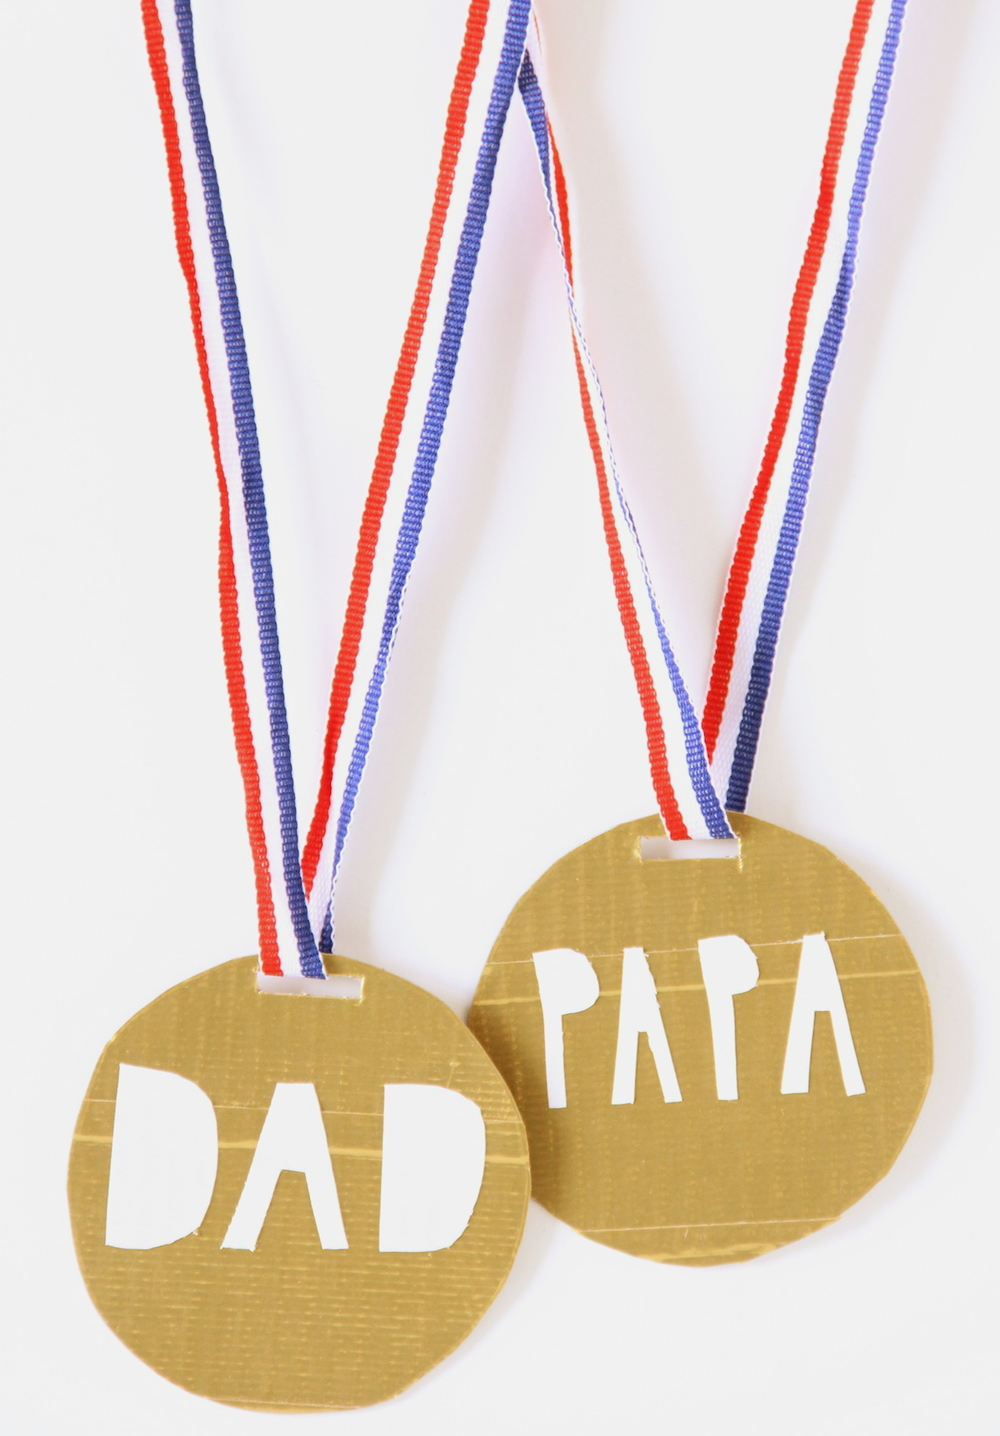 FATHER'S DAY MEDALS — And We Play | DIY For Kids